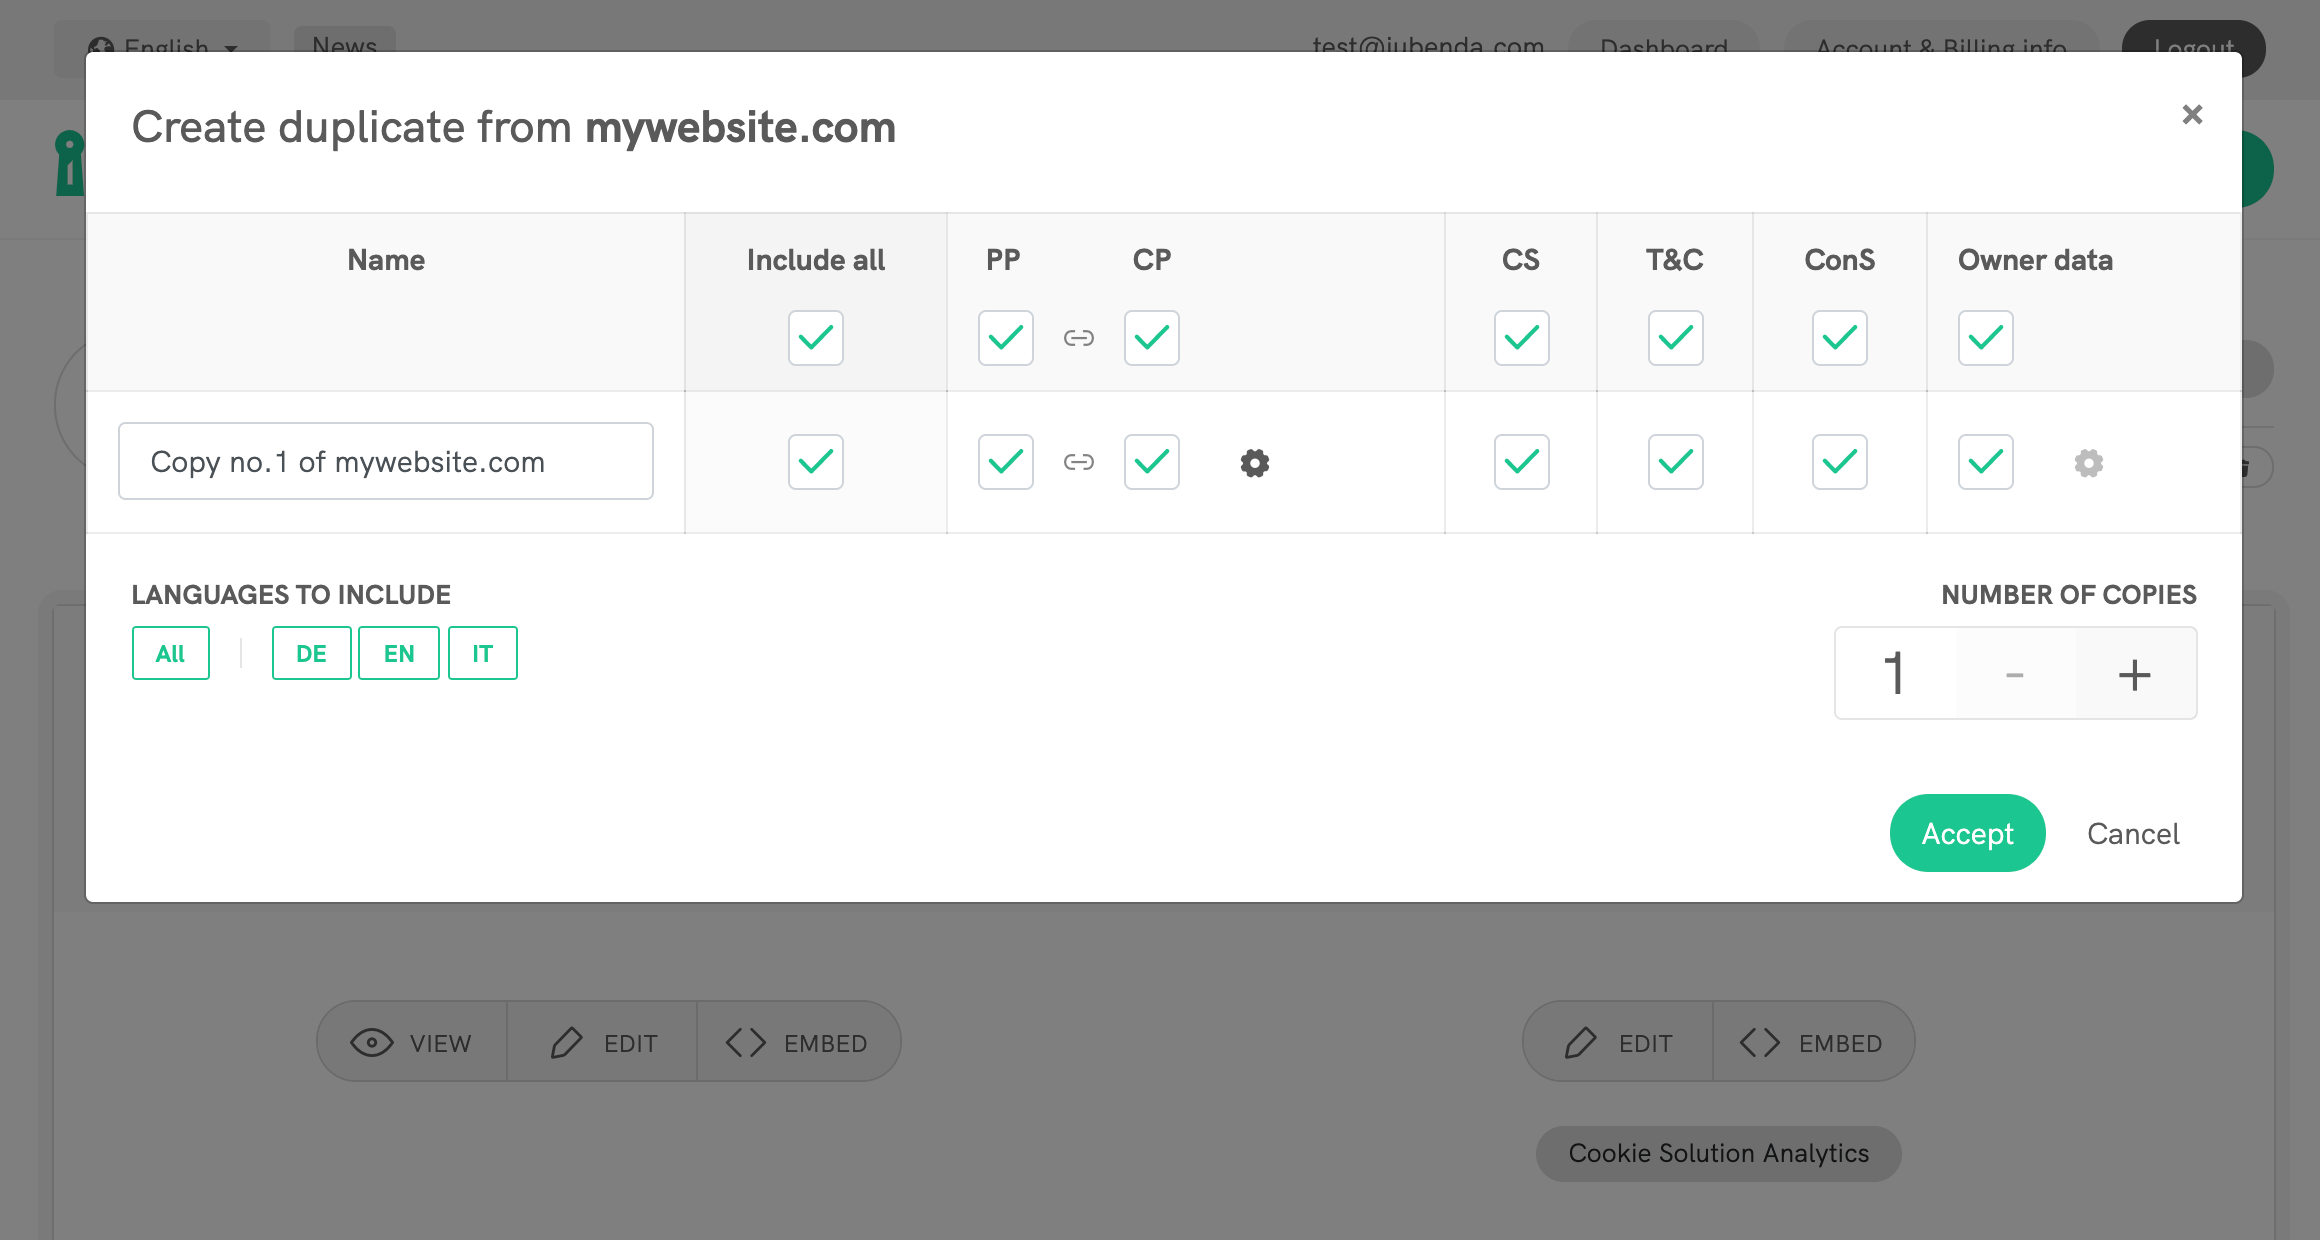 Duplicate an existing site